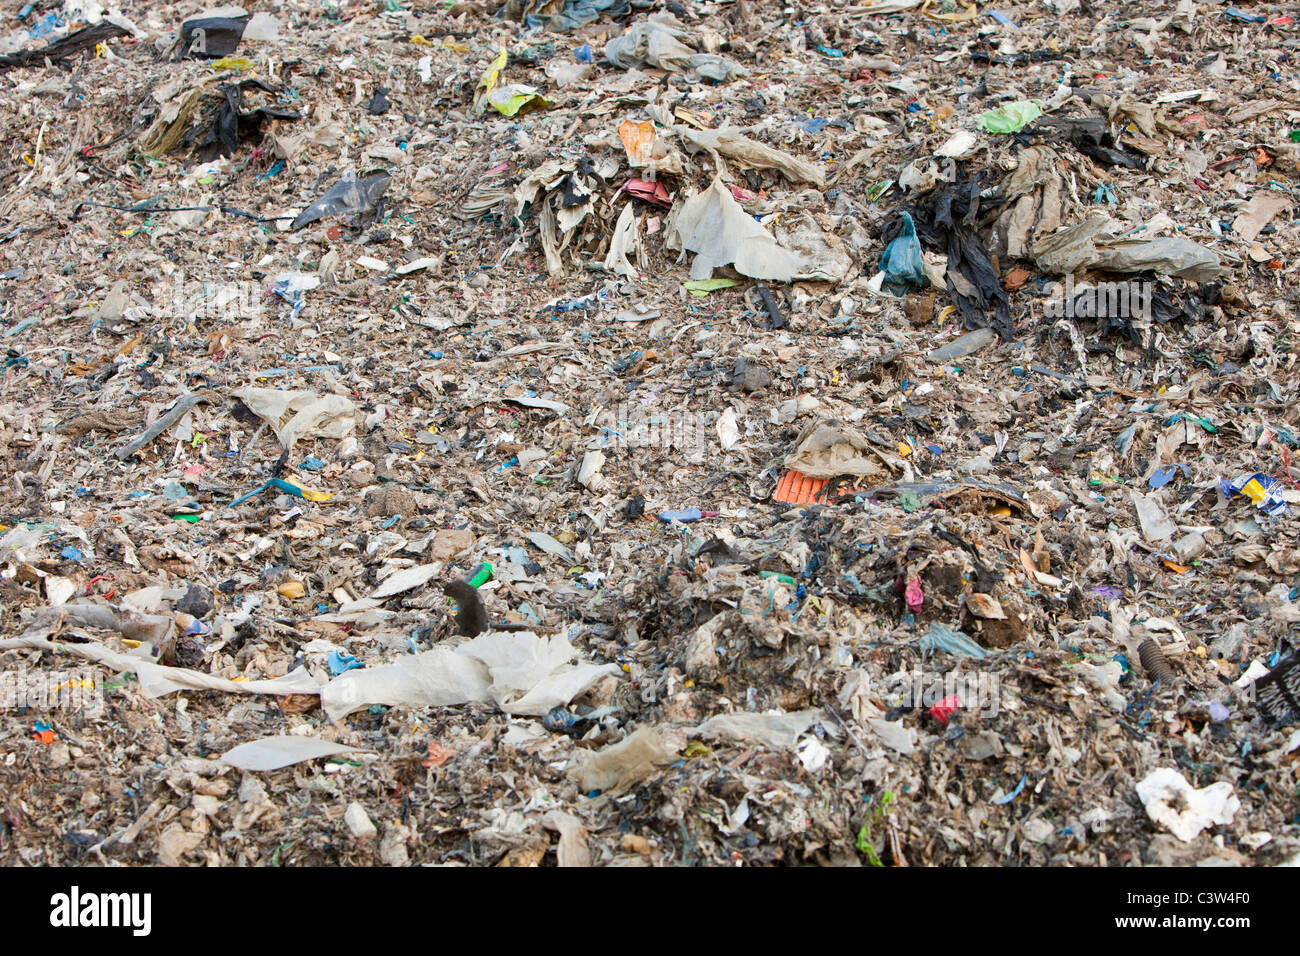 Plastic rubbish in a landfill site on Teeside, UK. - Stock Image